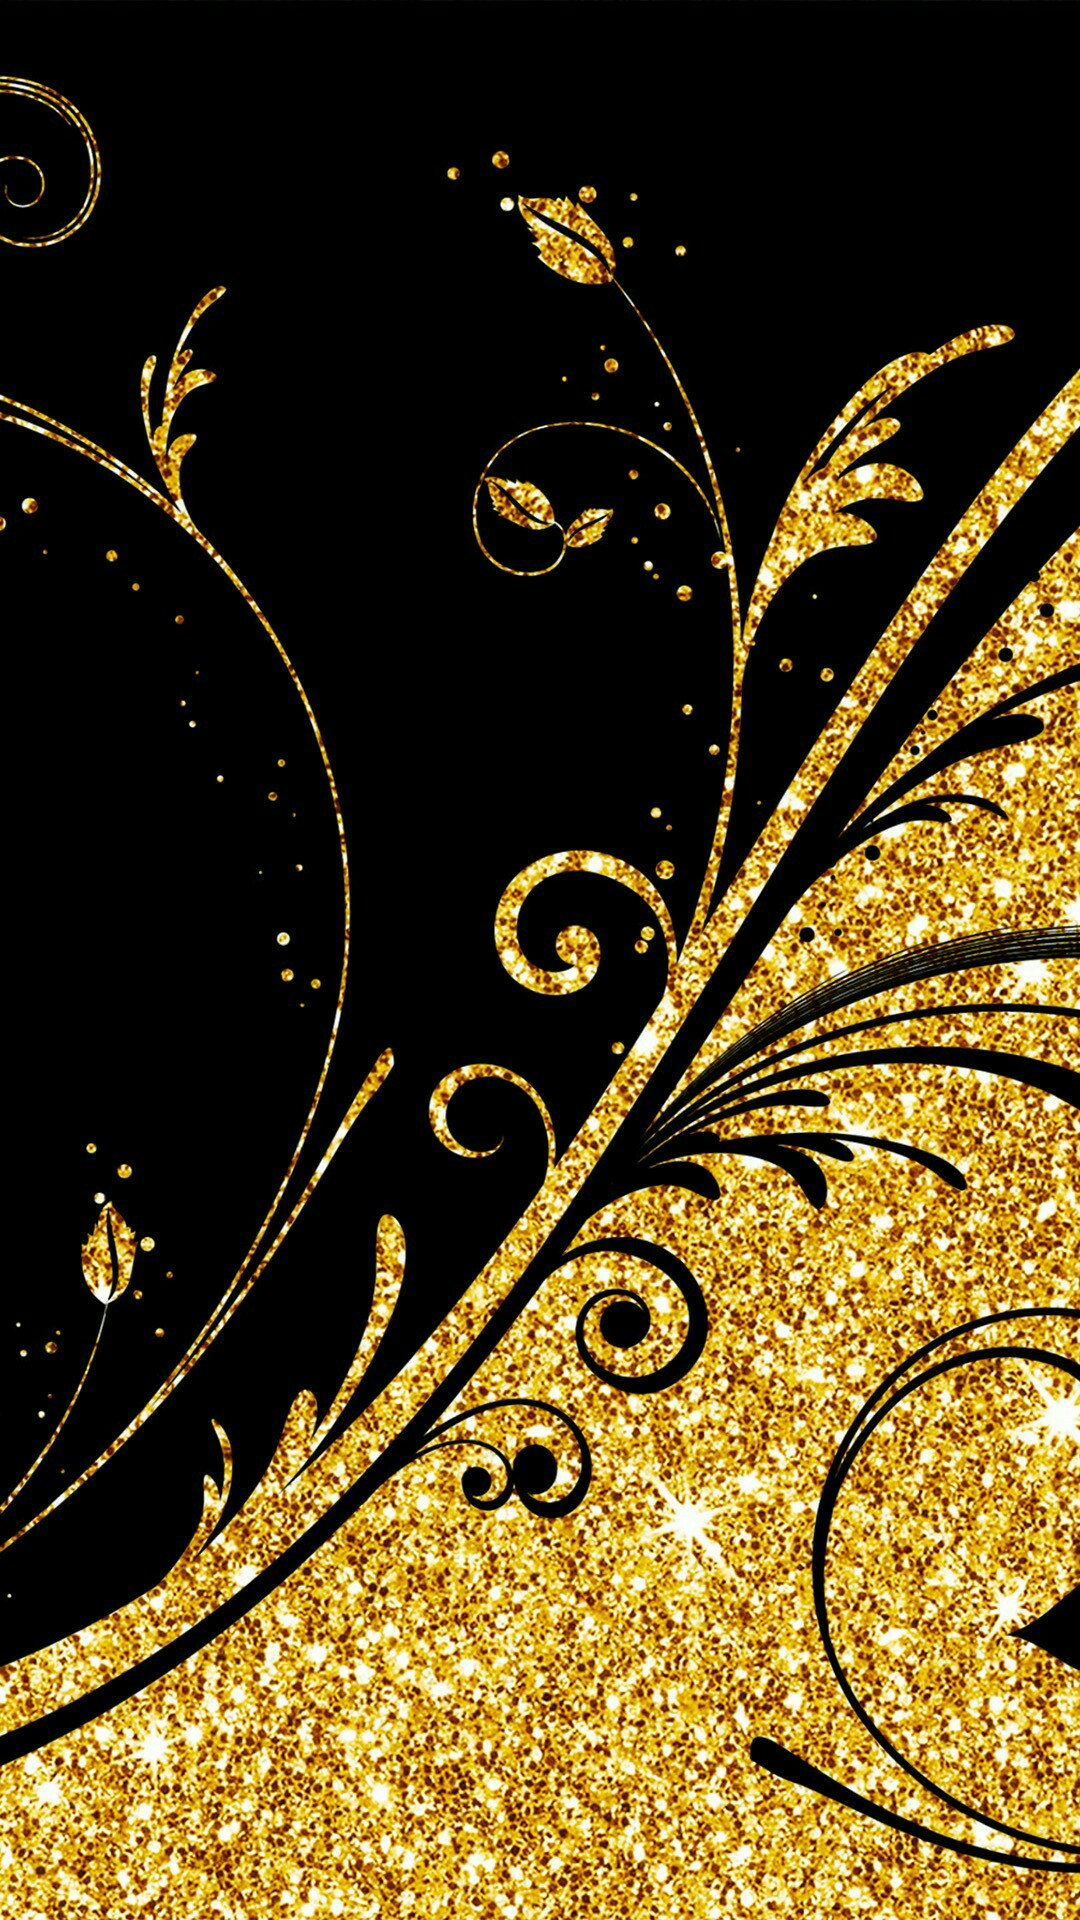 Black-and-gold-wallpaper-wp5403709